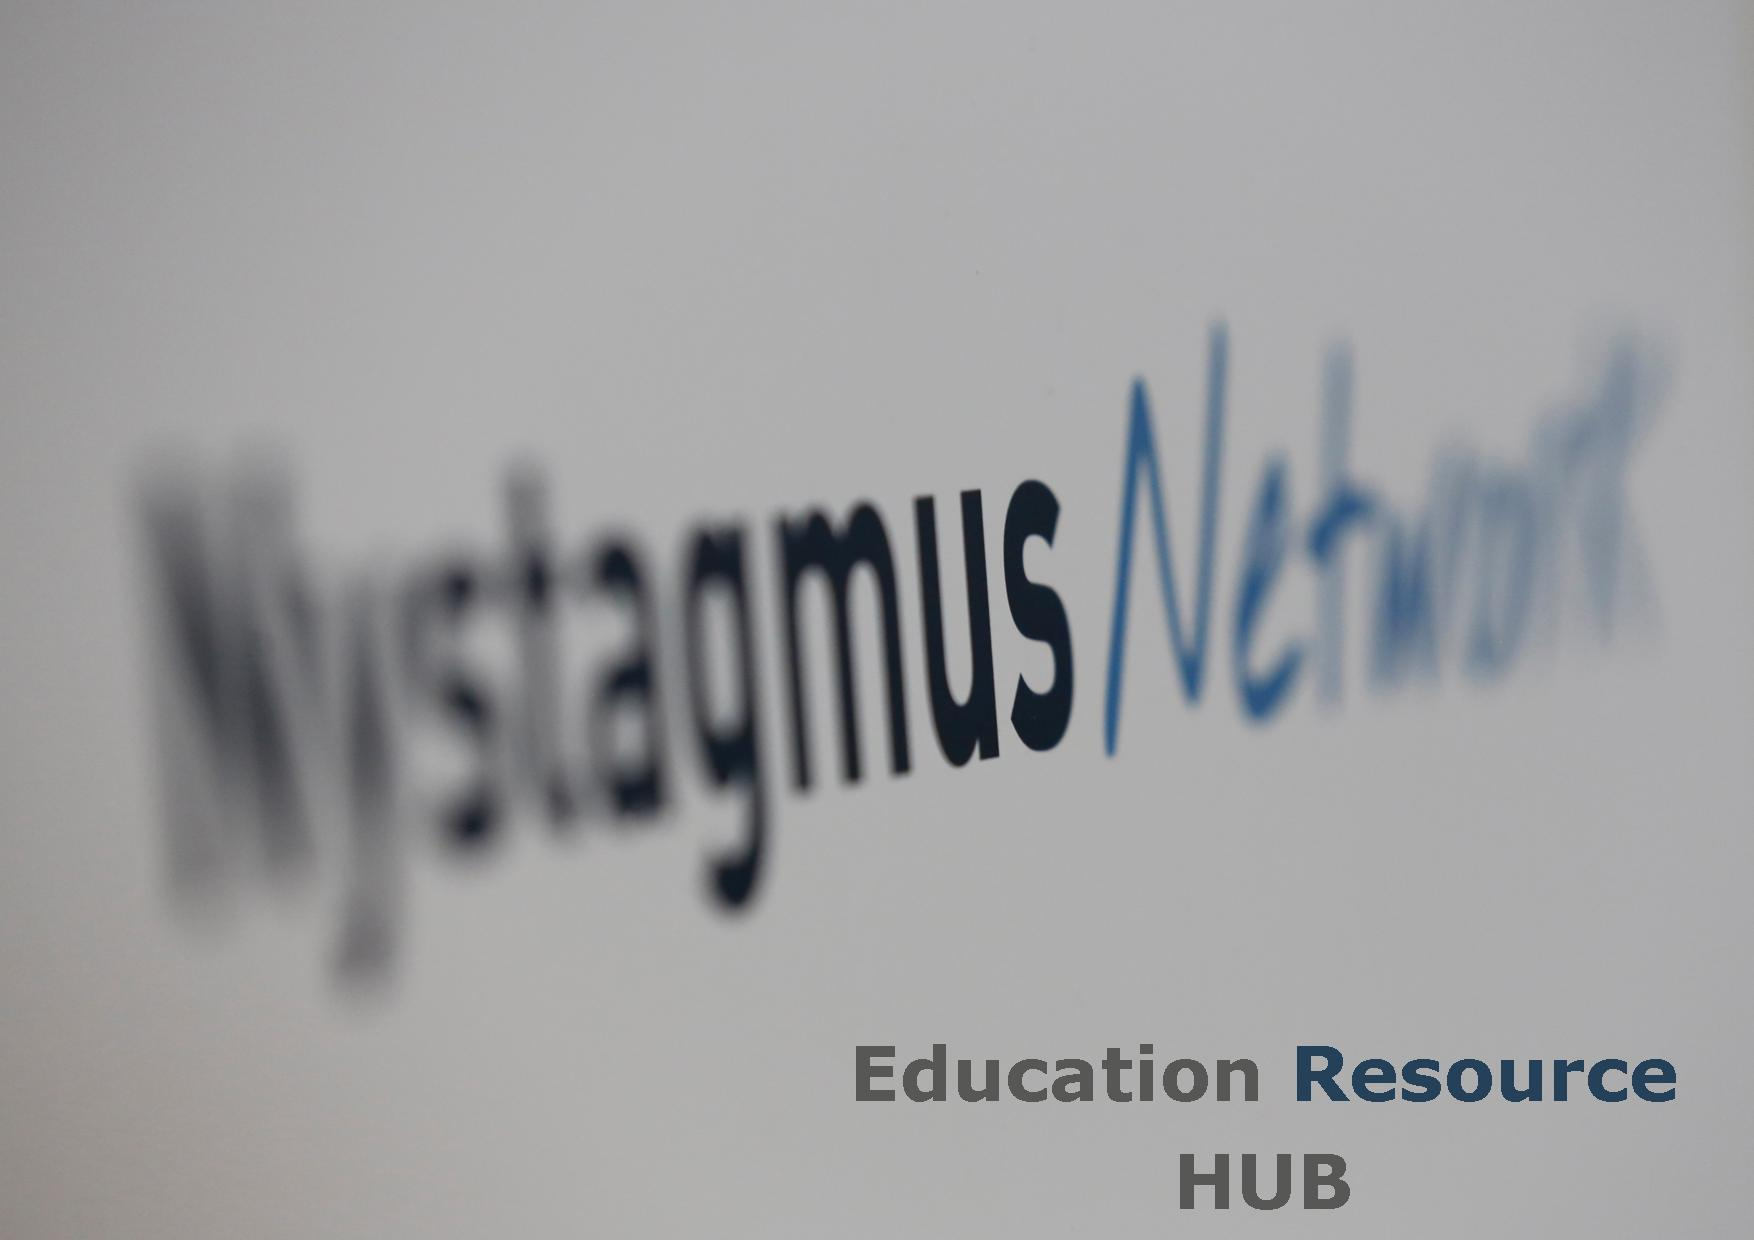 Education Resource HUB – launch